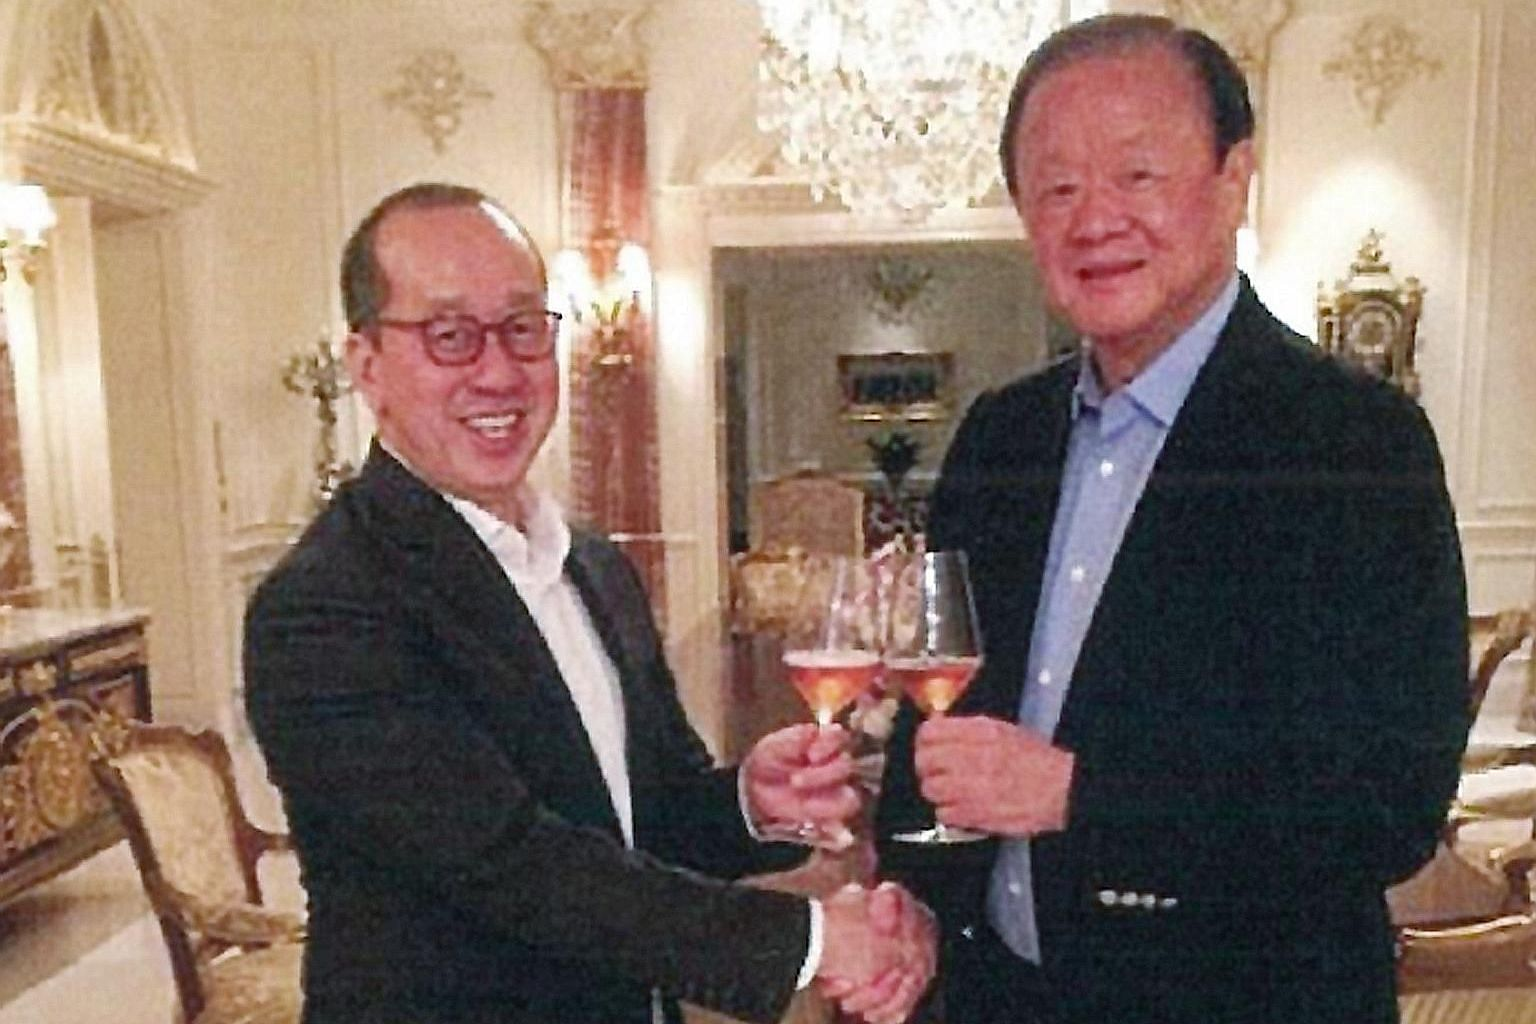 Raffles Education chairman Chew Hua Seng (far left) and tycoon Oei Hong Leong having a champagne toast at the house of Mr Oei's sister, Ms Sukmawati Widjaja, on Oct 16, 2017.